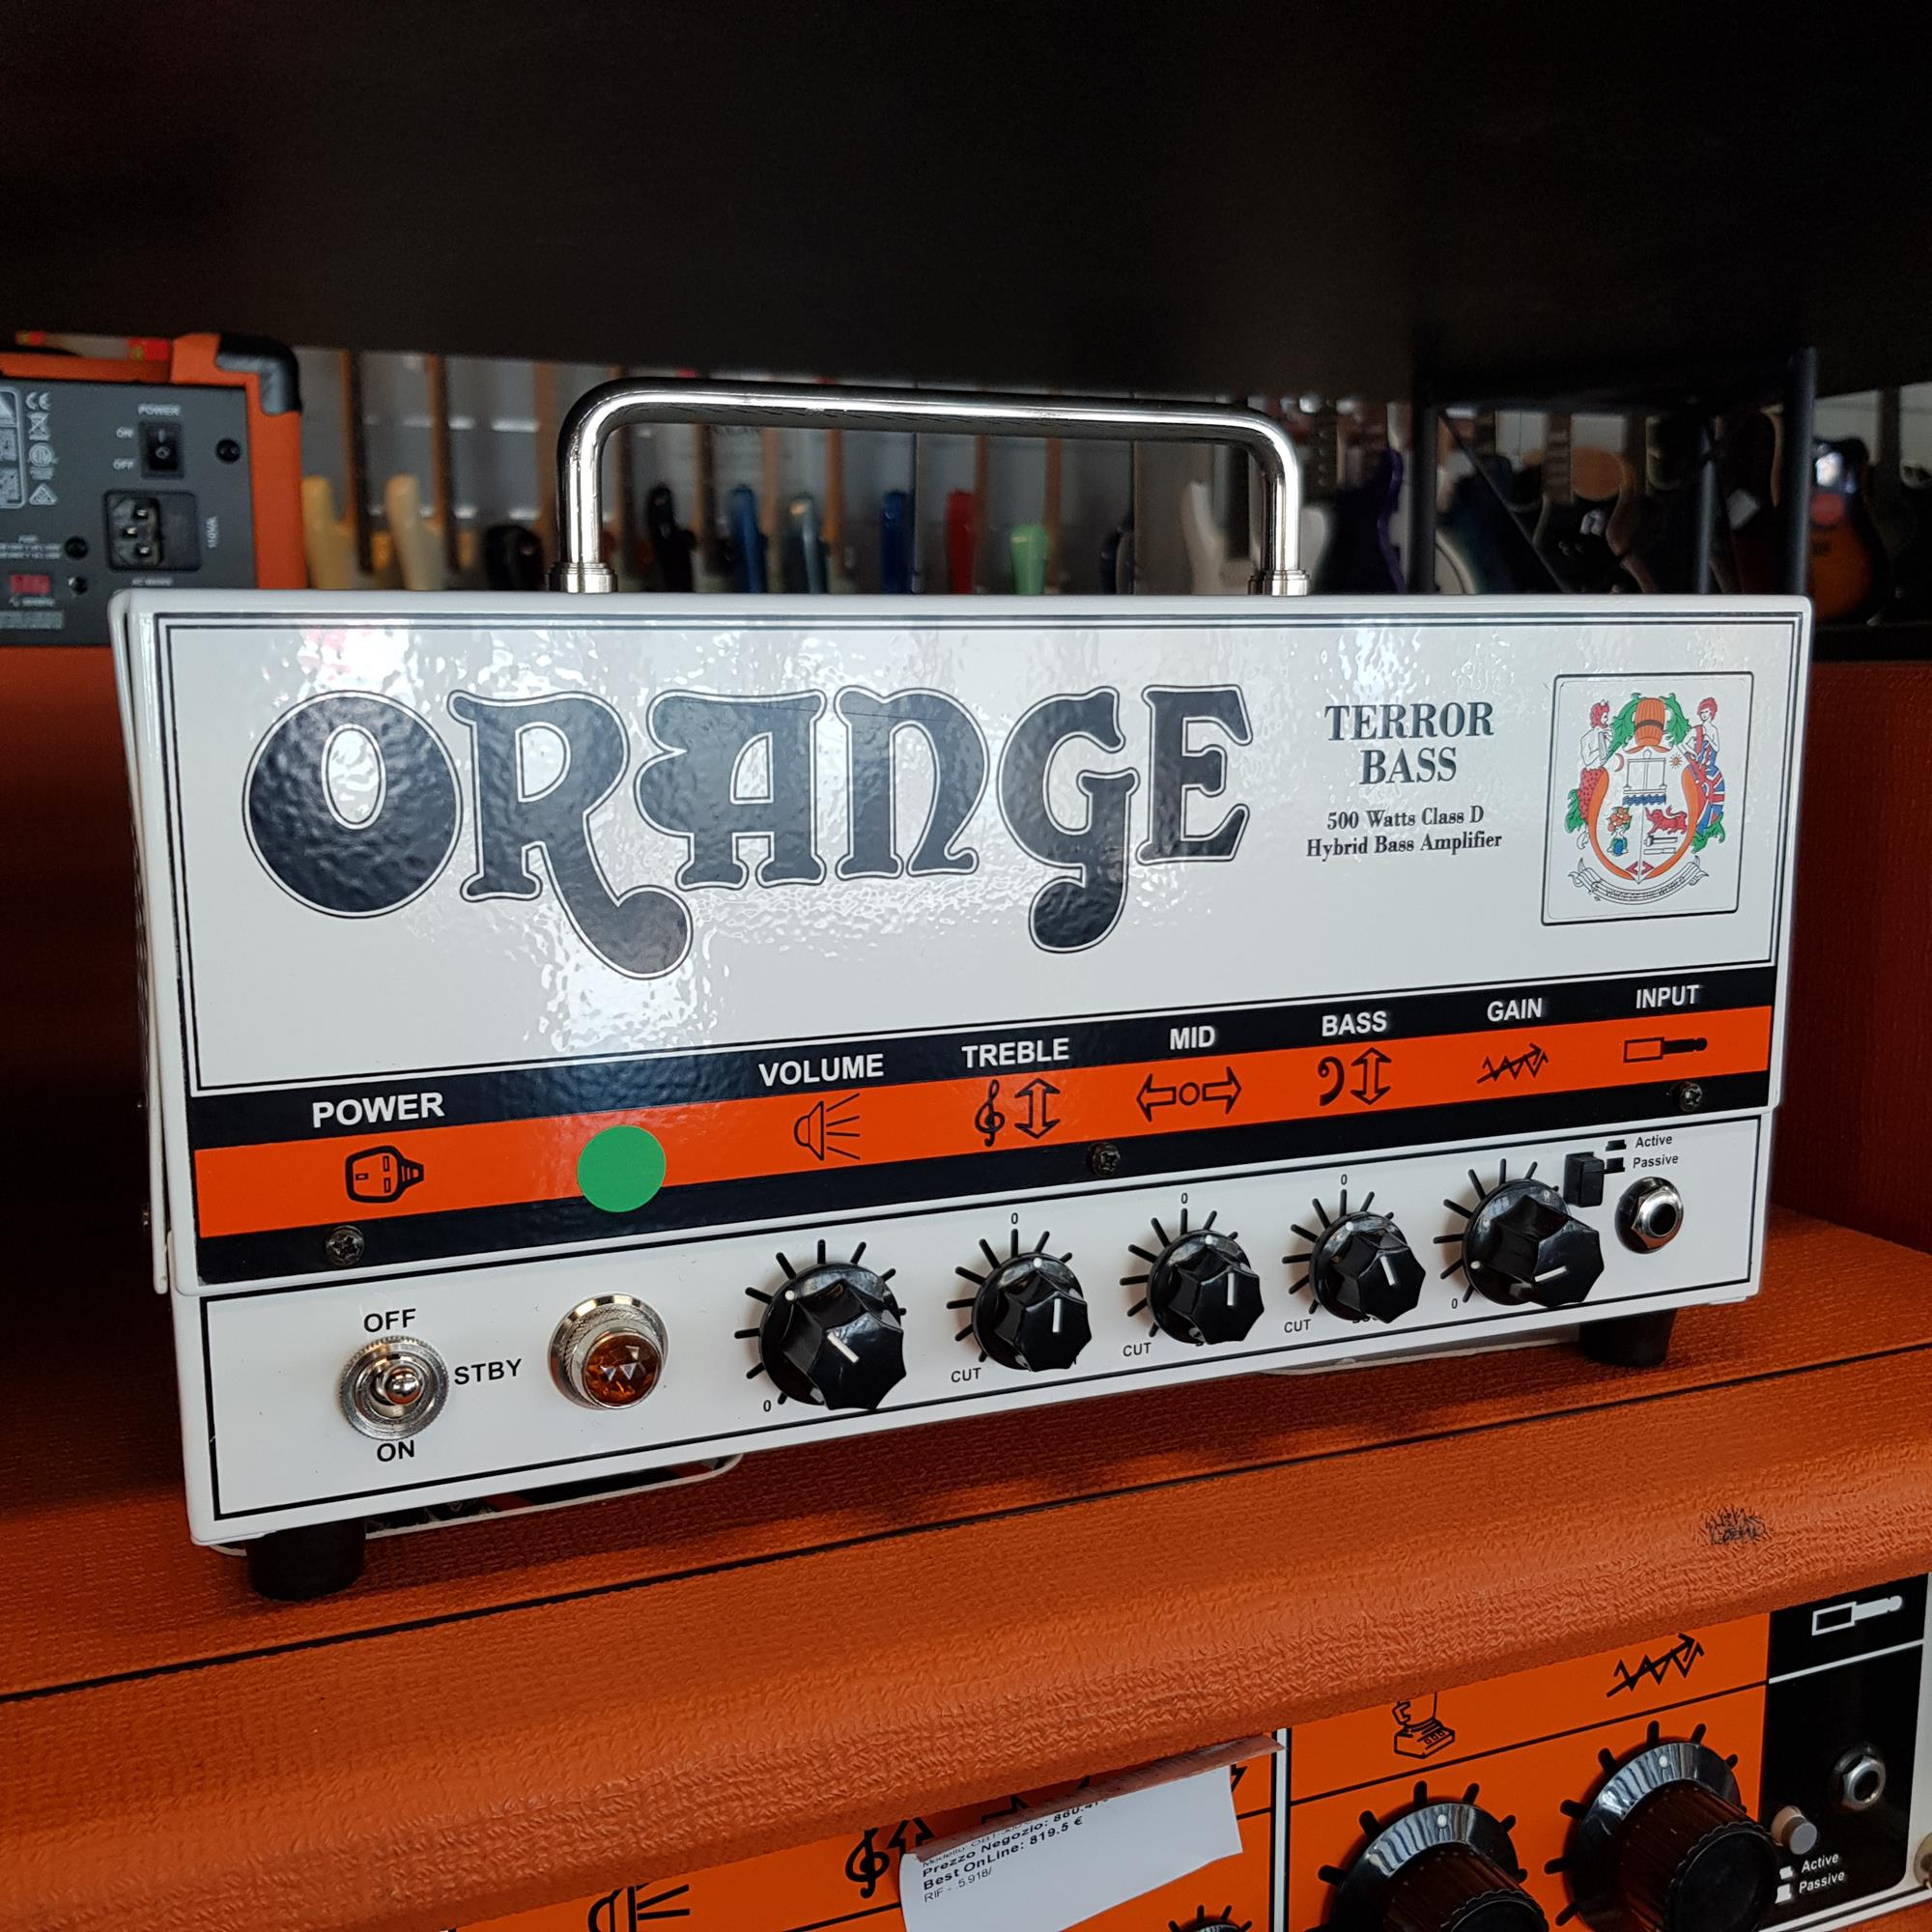 ORANGE-BT500H-TERROR-BASS-sku-1590245321839